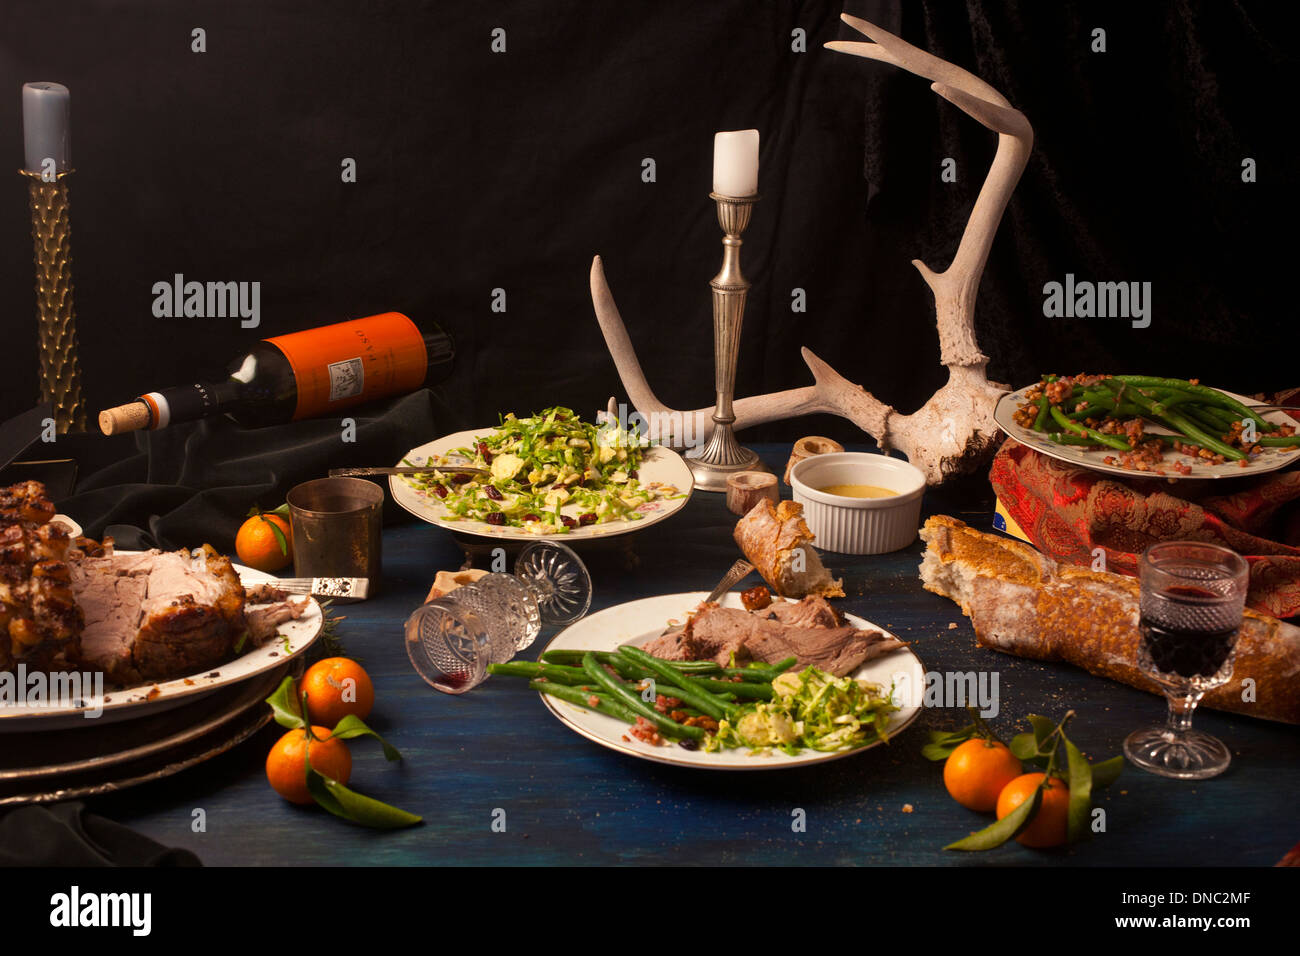 Pork roast after math dinner still life Stock Photo